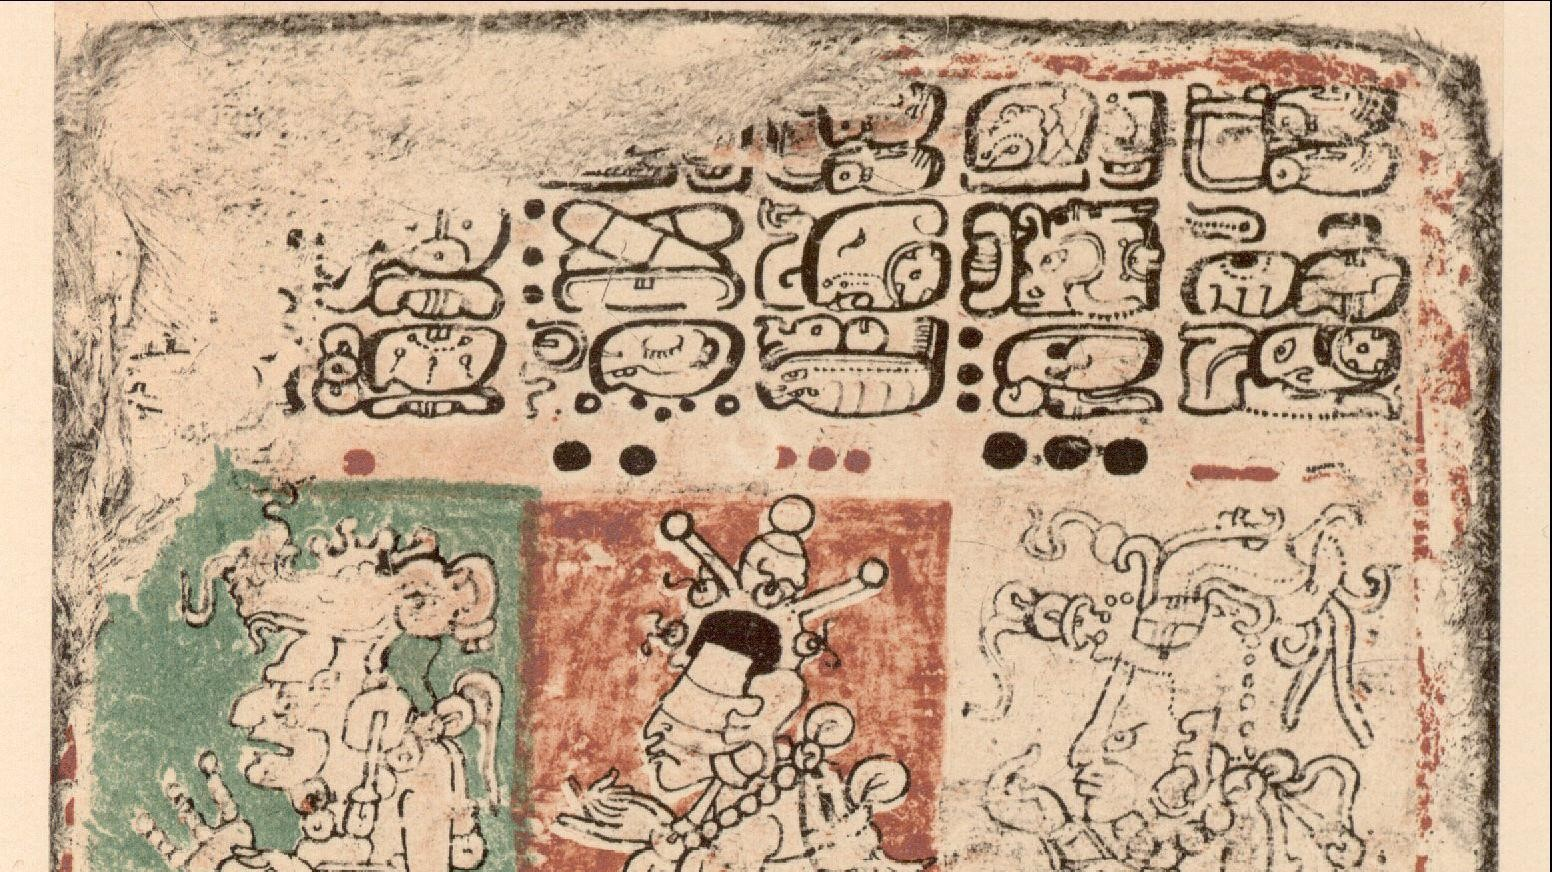 EPFL researchers have come up with an algorithm to analyze Mayan ...